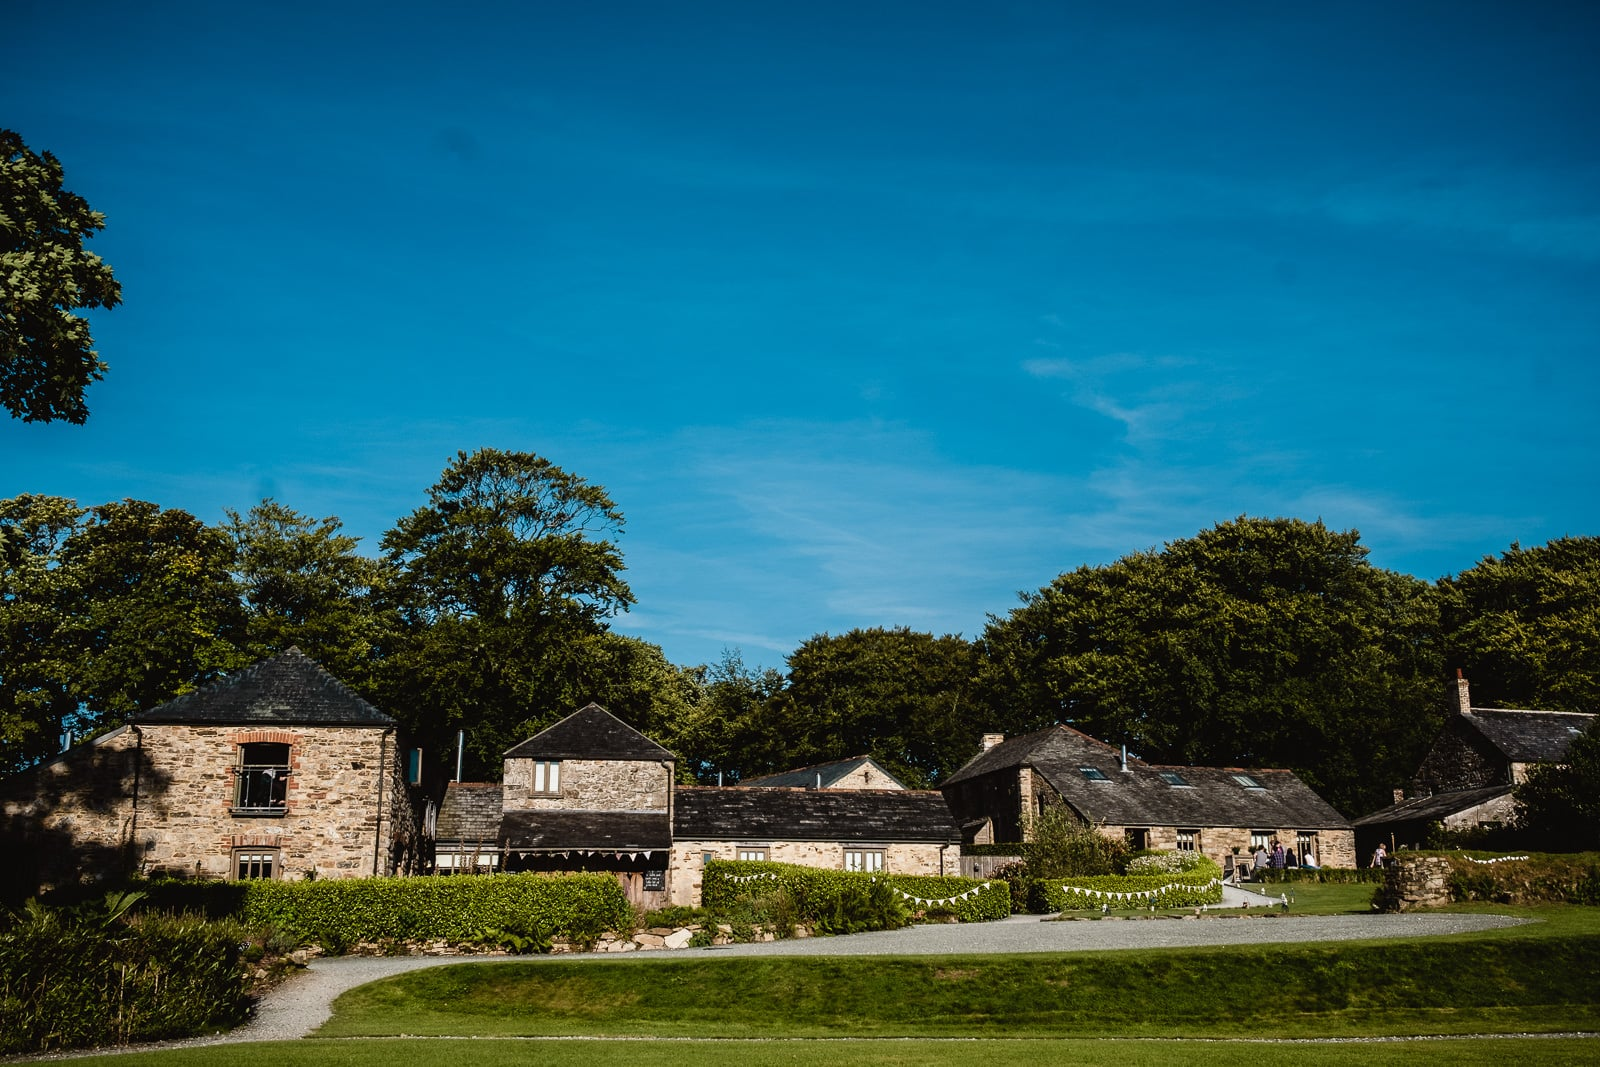 A wide shot of the barns, garden venue and cottages at Trevenna